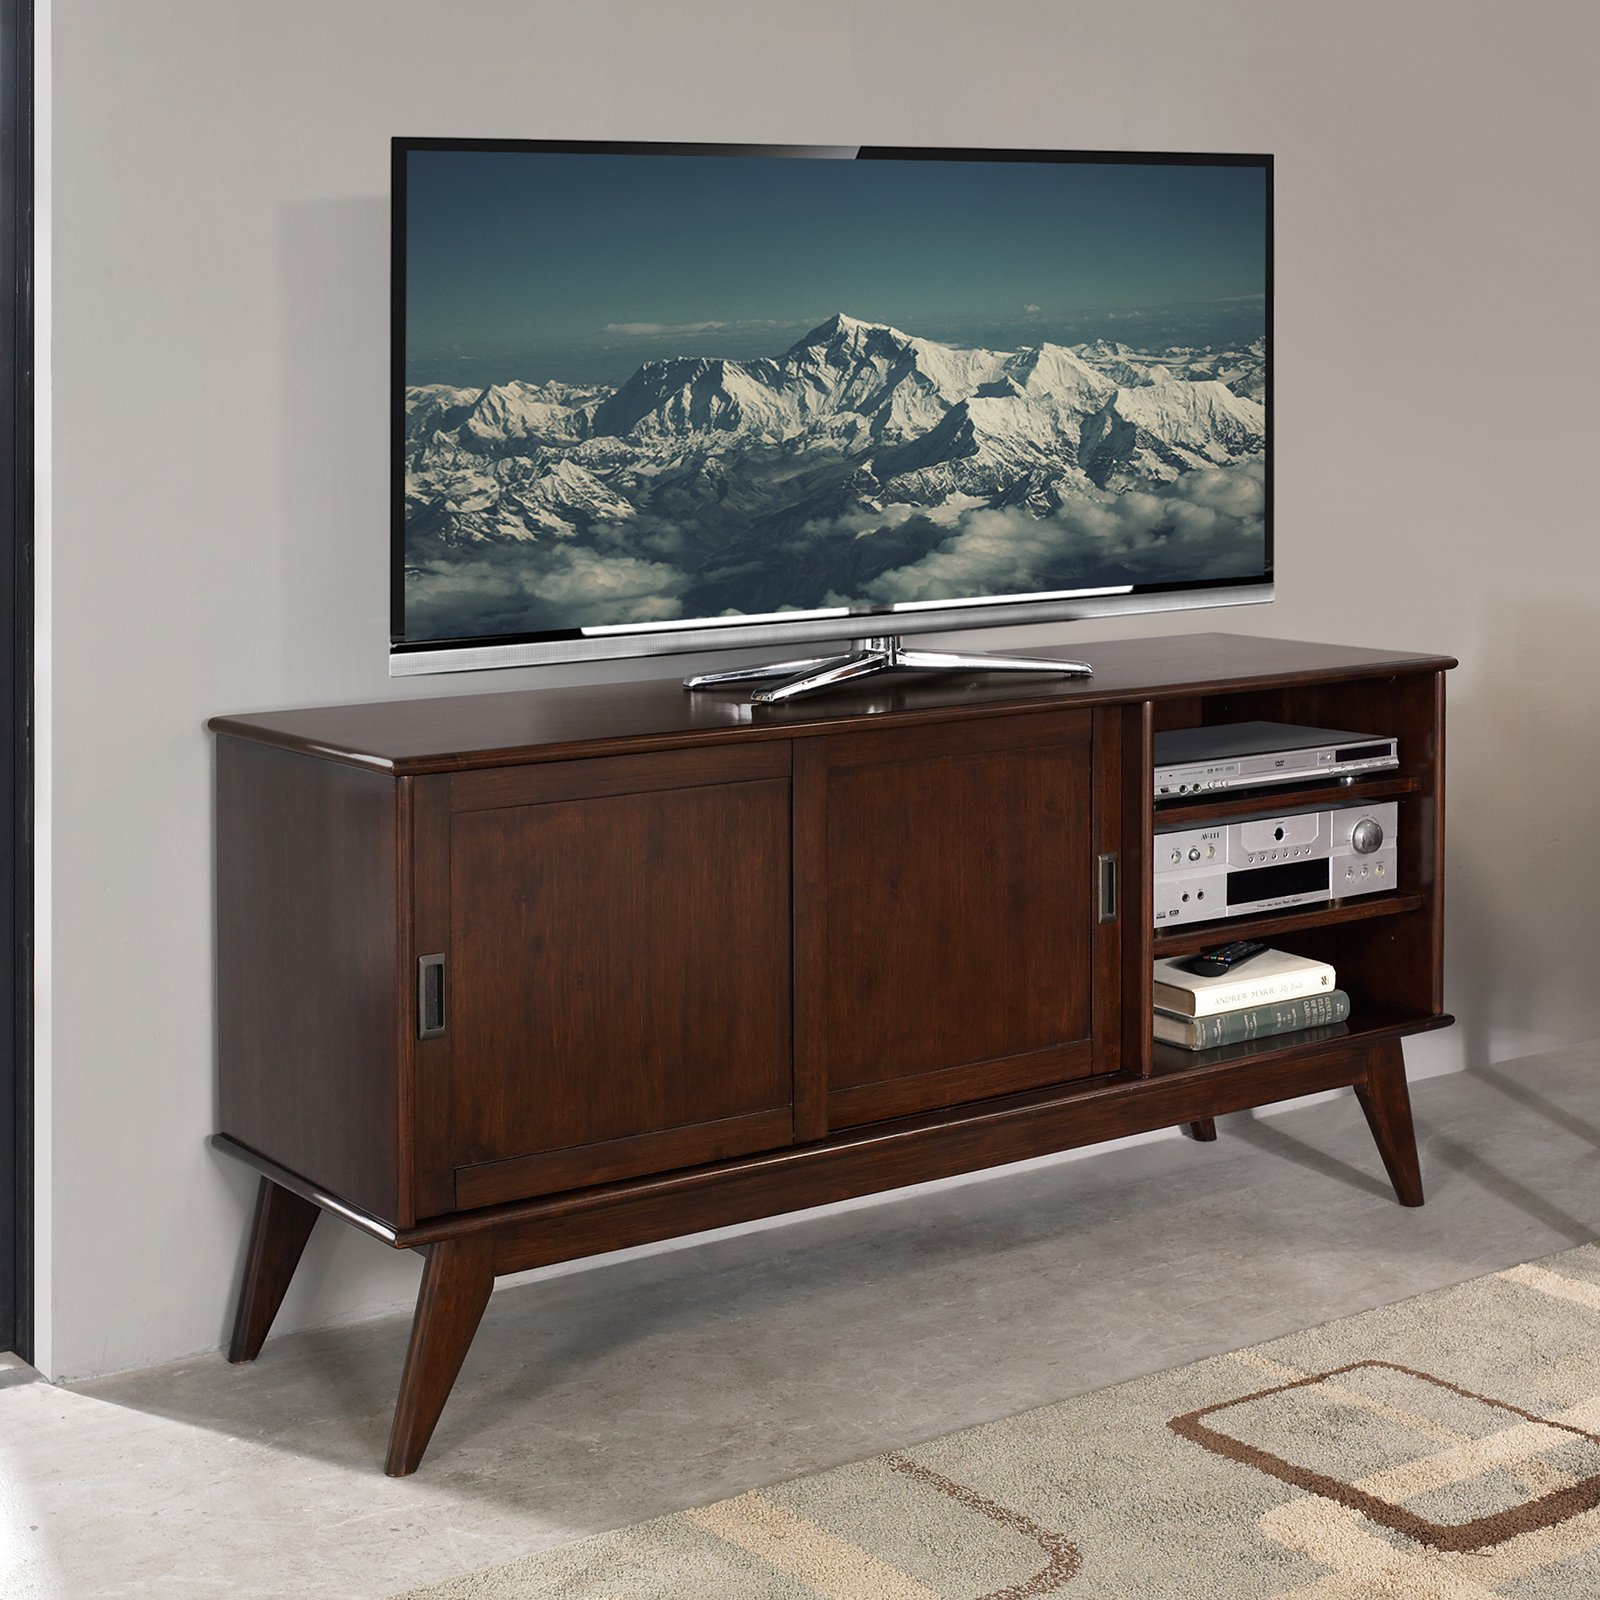 modern low amazing images cabinet most stands bench storage on console skinny doors consoles with century simple mid bar unit modular tv cabinets design door glass and media dandy